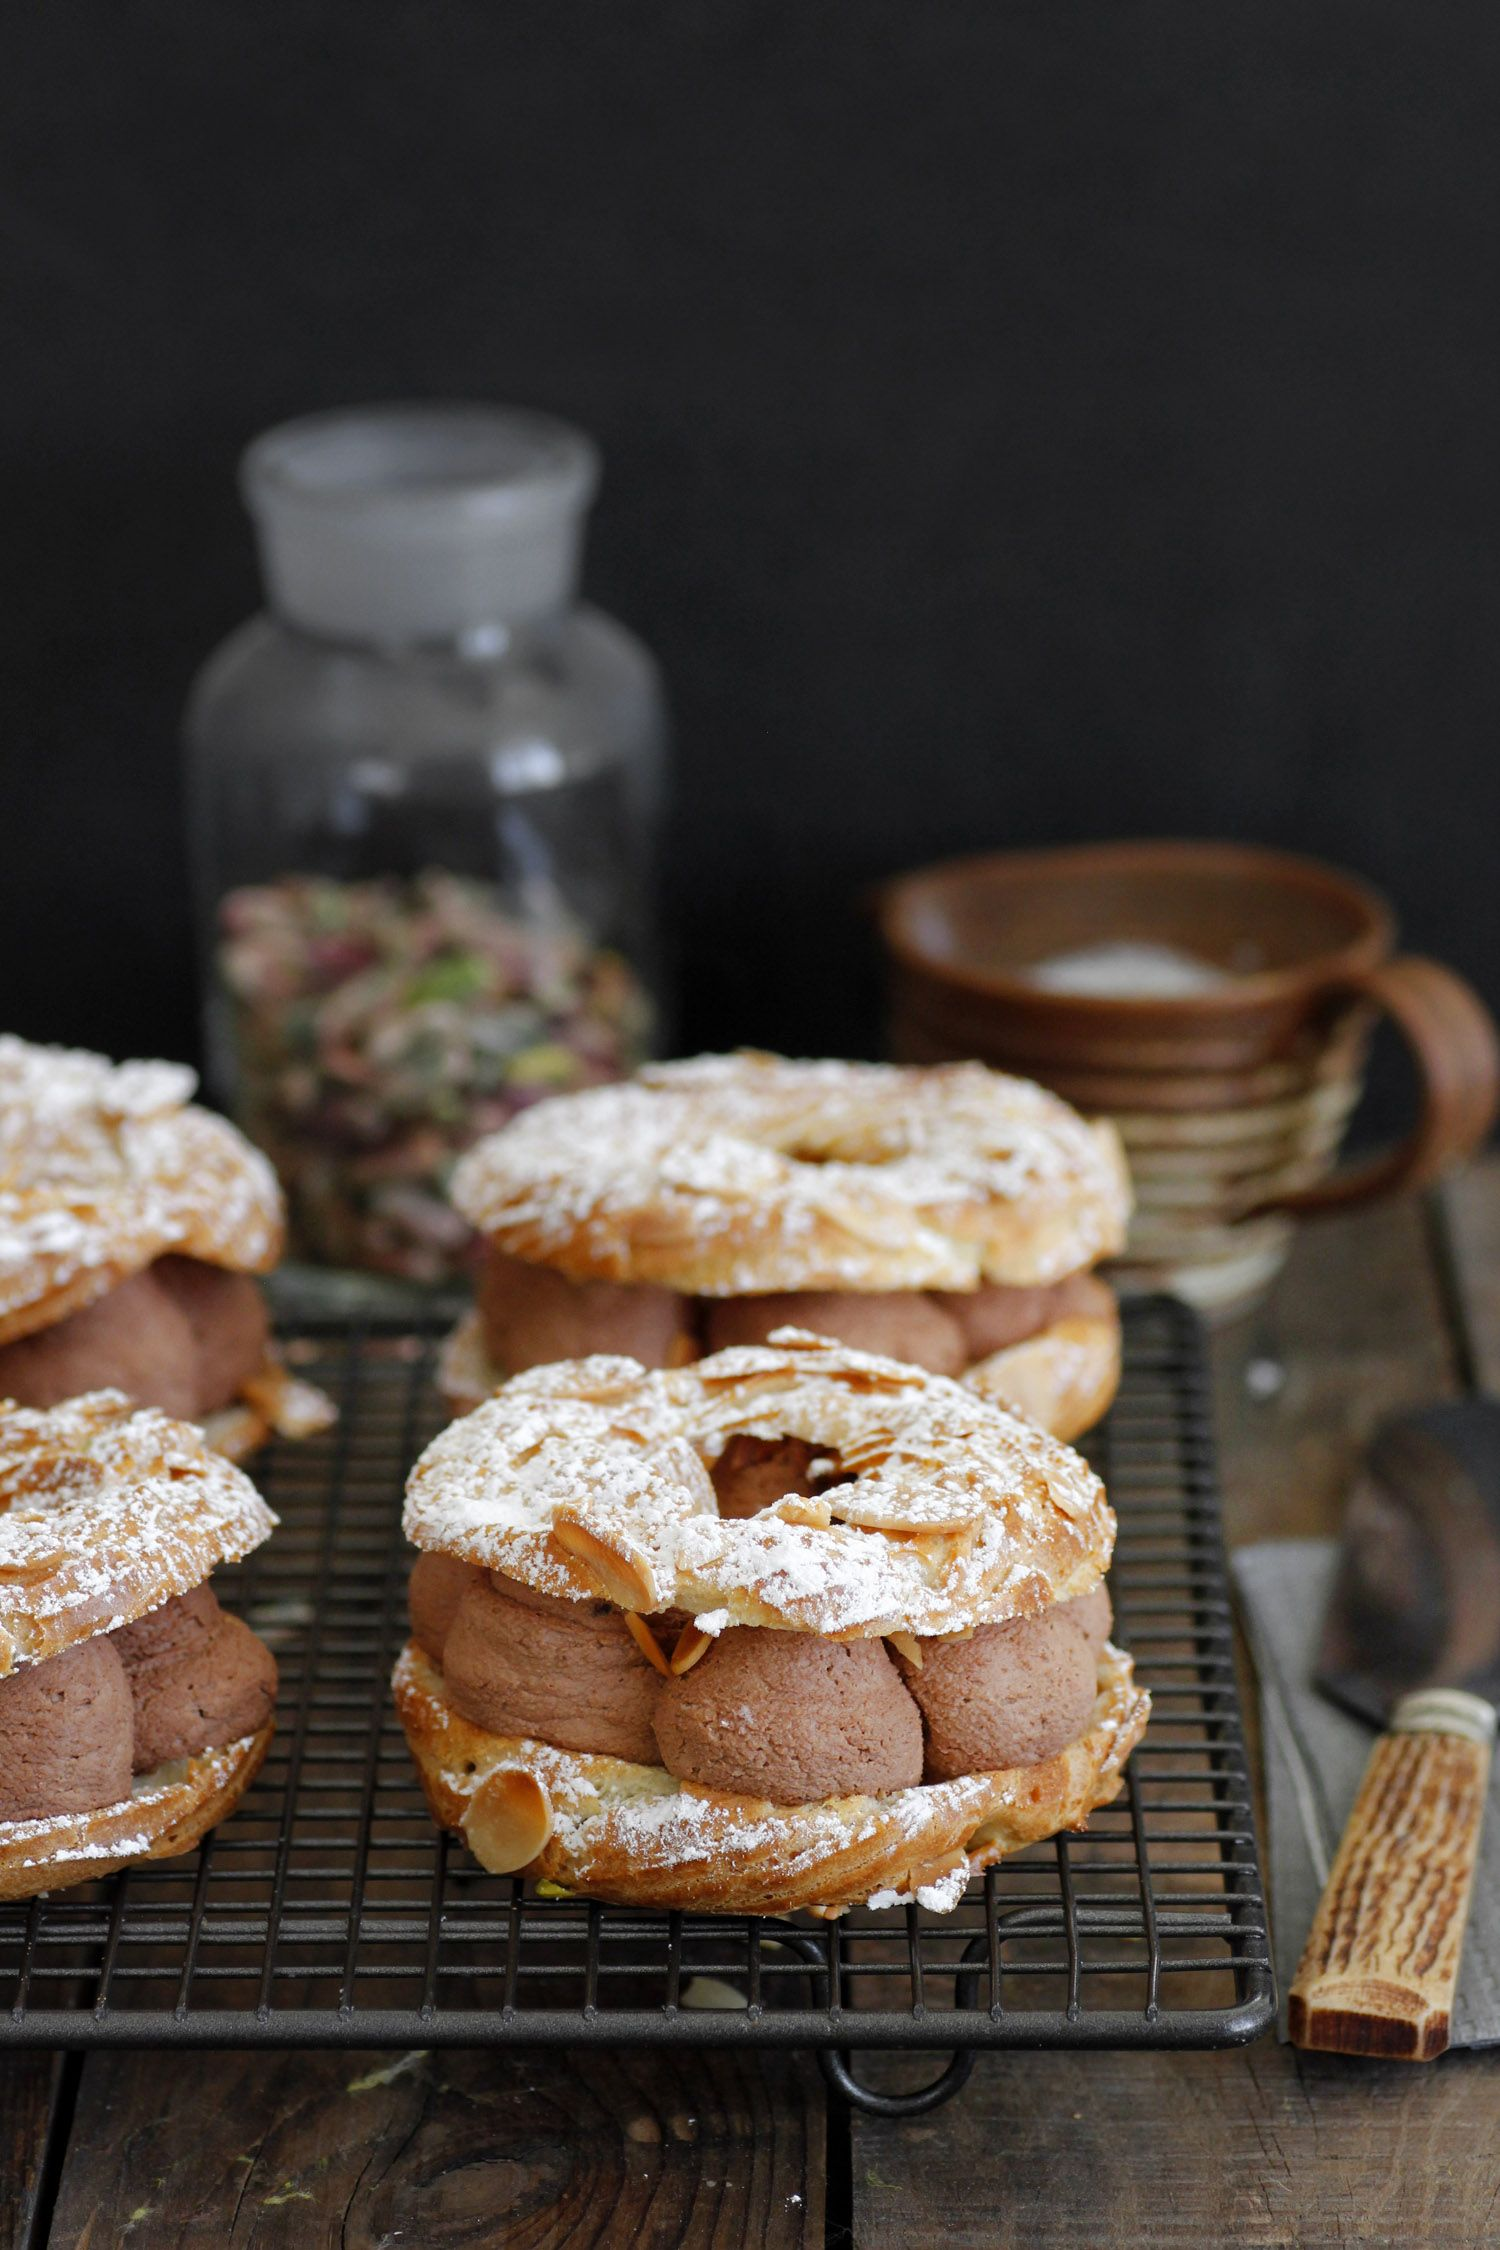 Chocolate and Almond Paris Brest